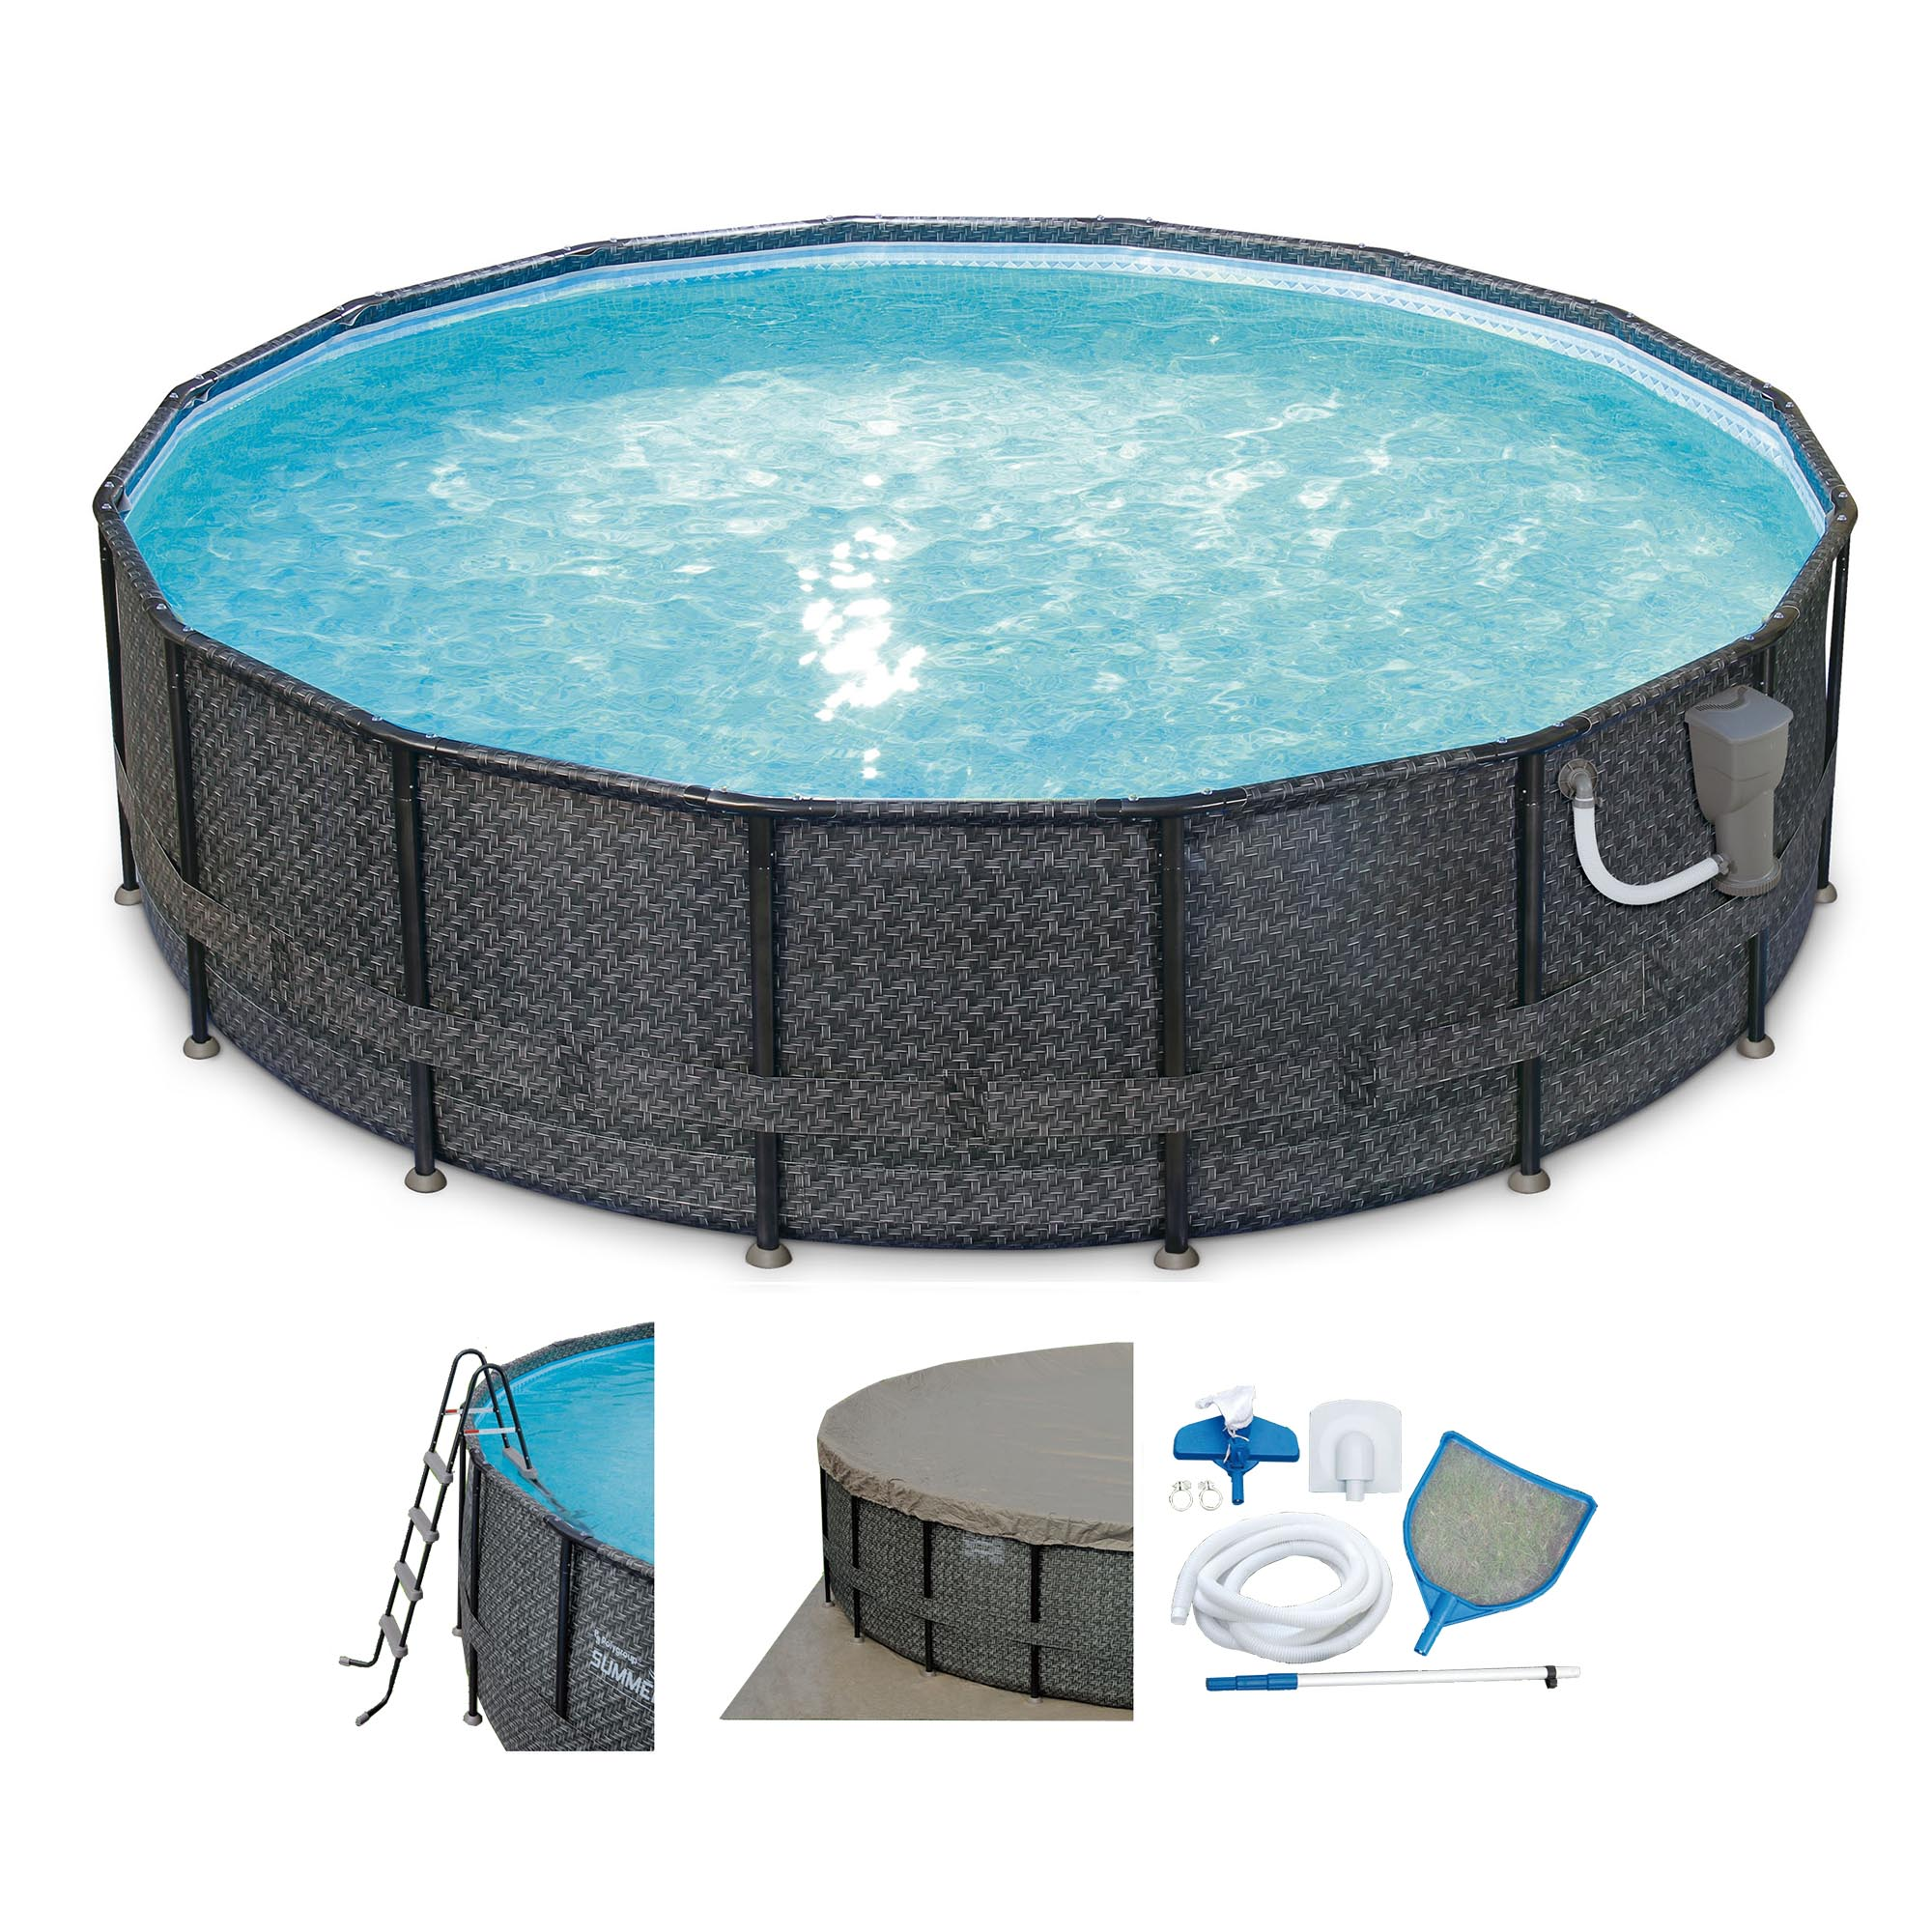 "Summer Waves Elite Wicker Print 16' x 48"" Above Ground Frame Pool Set w/ Pump"